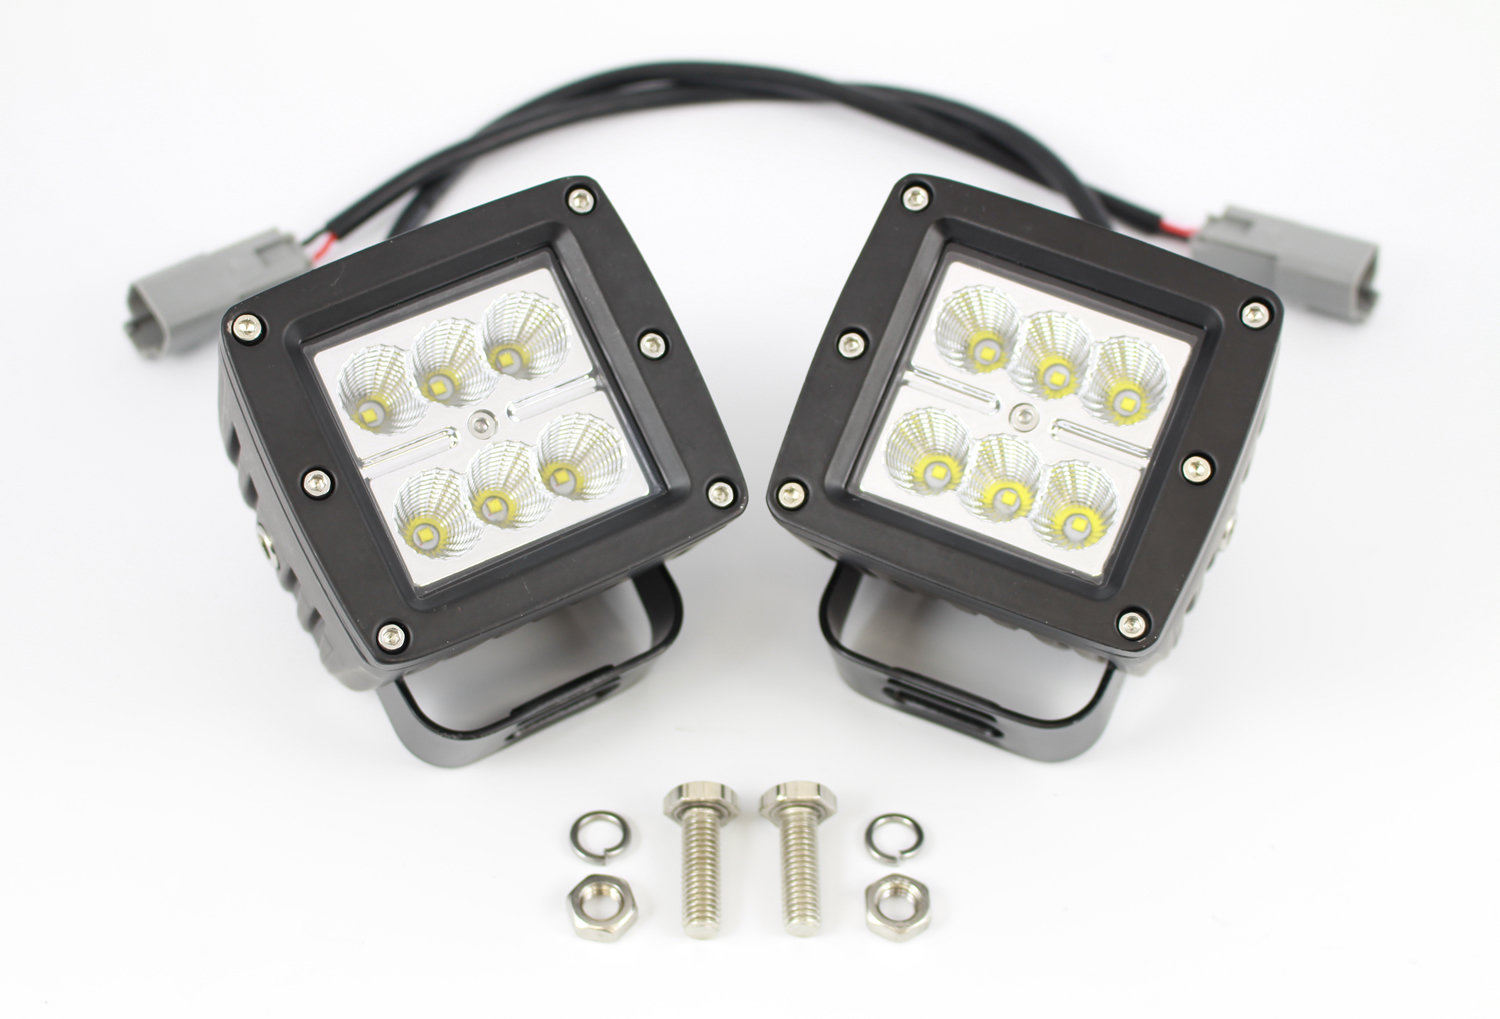 Complete Truck Amp Suv Backup Reverse Lighting Kit With